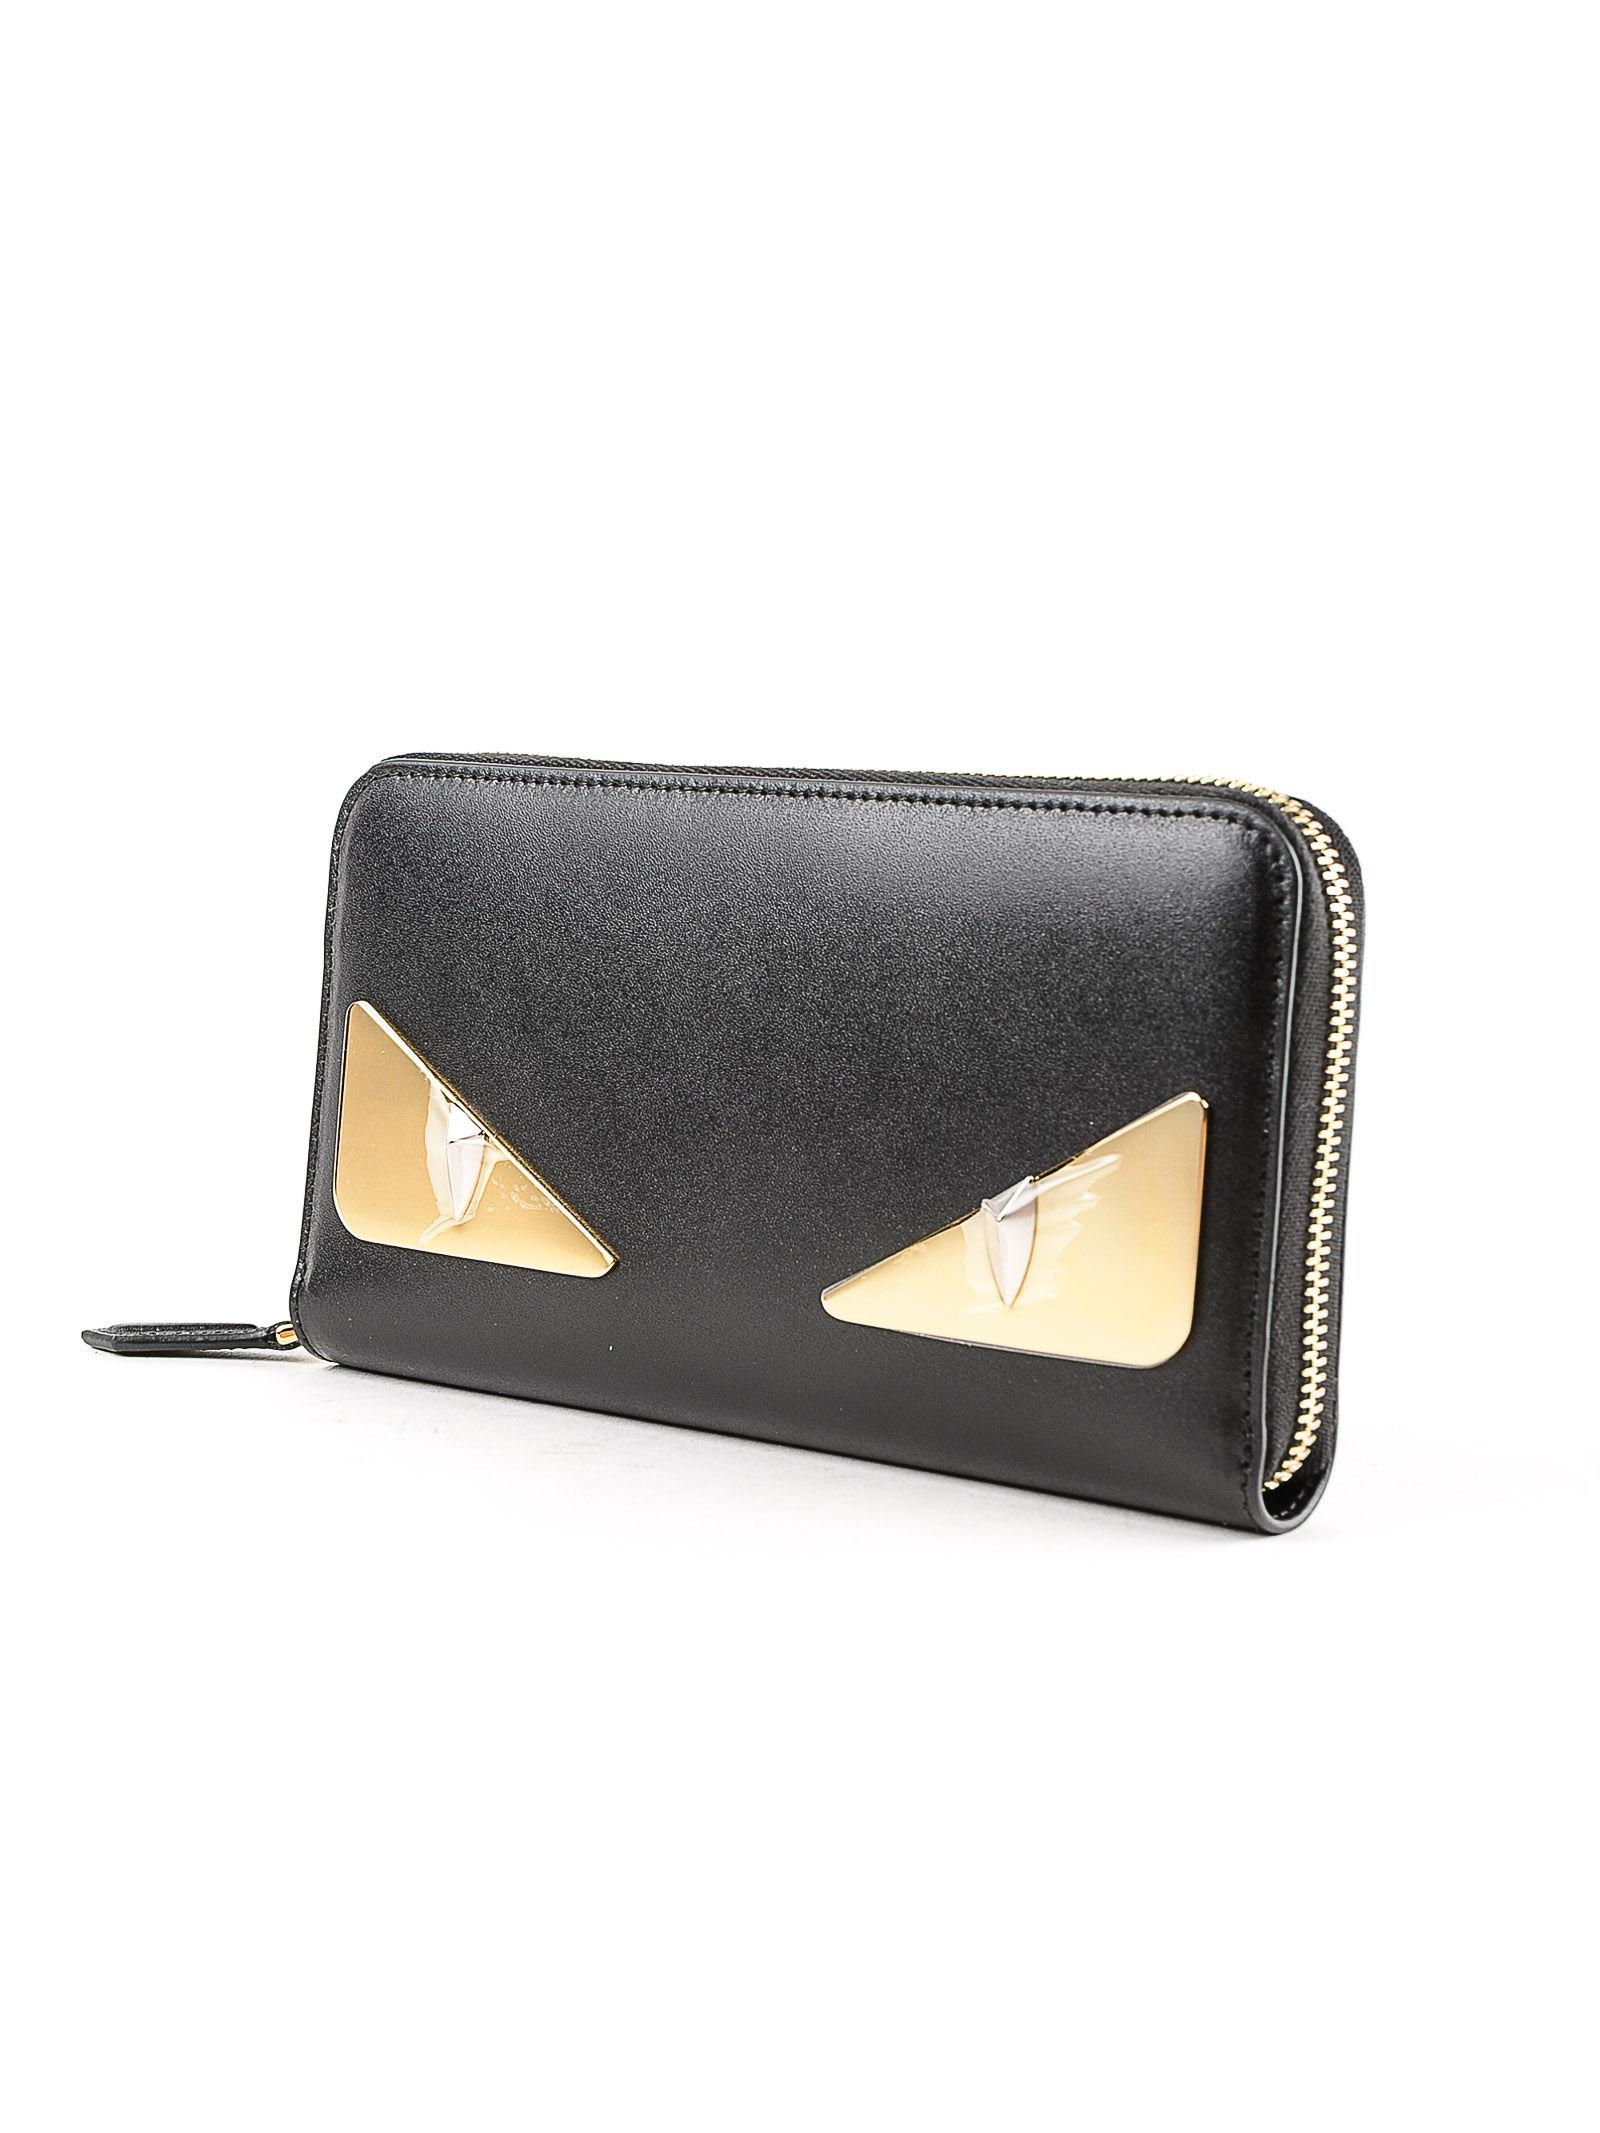 0fd7471610cd Lyst - Fendi Zip Around Wallet in Black